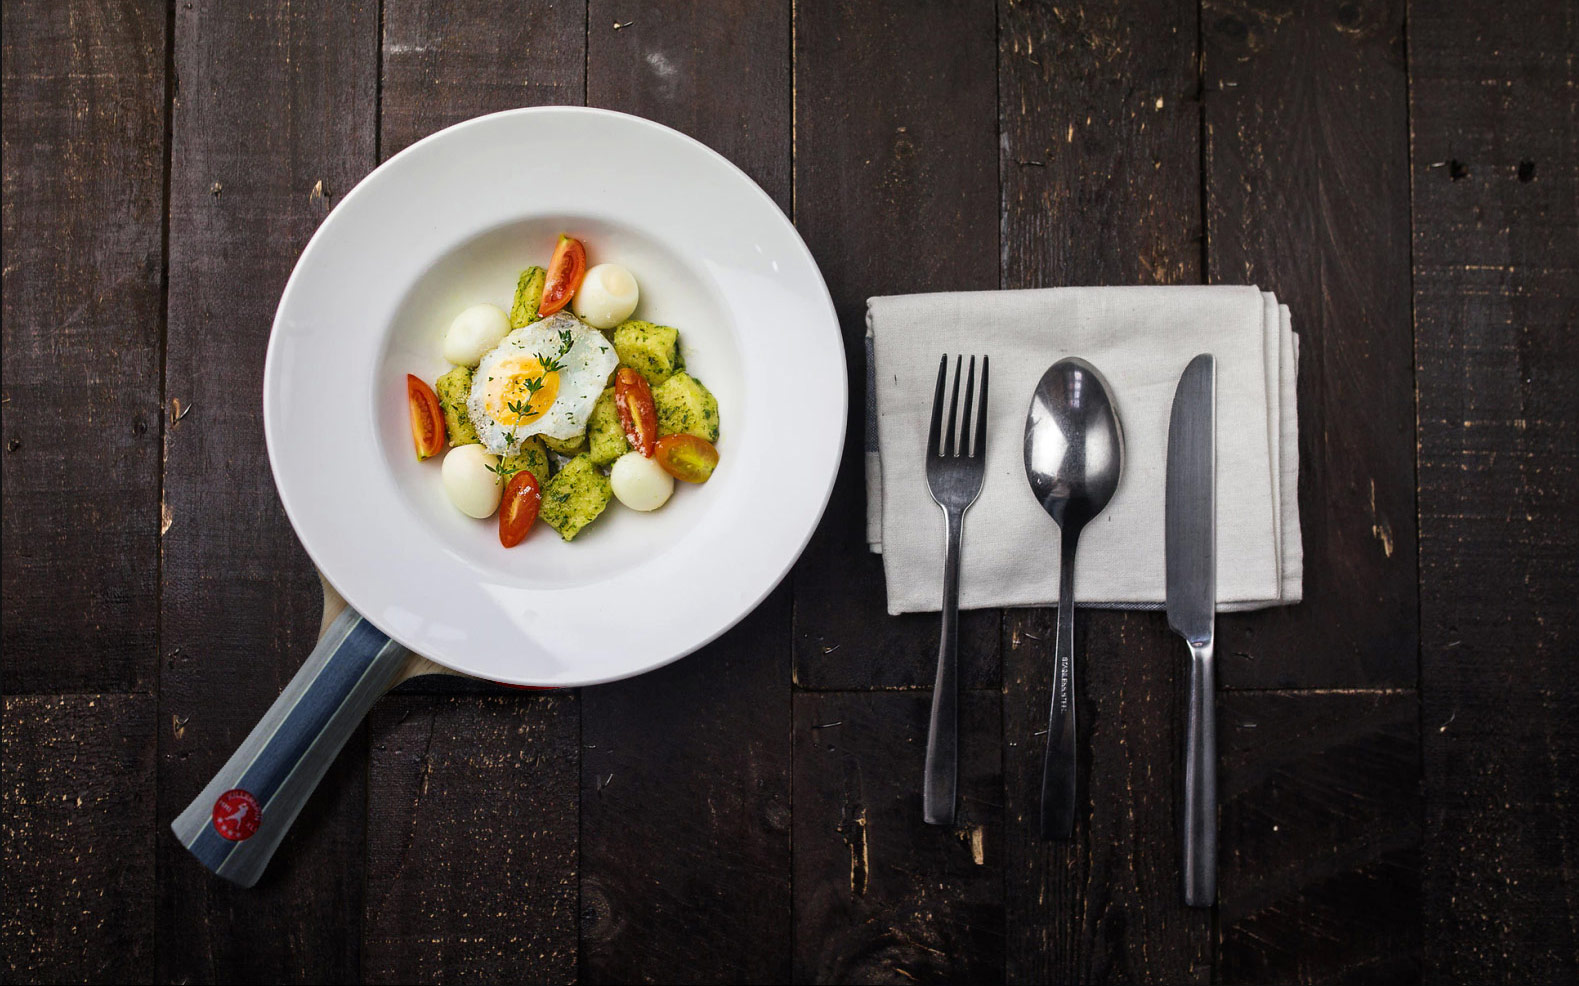 What to eat to improve performance in table tennis